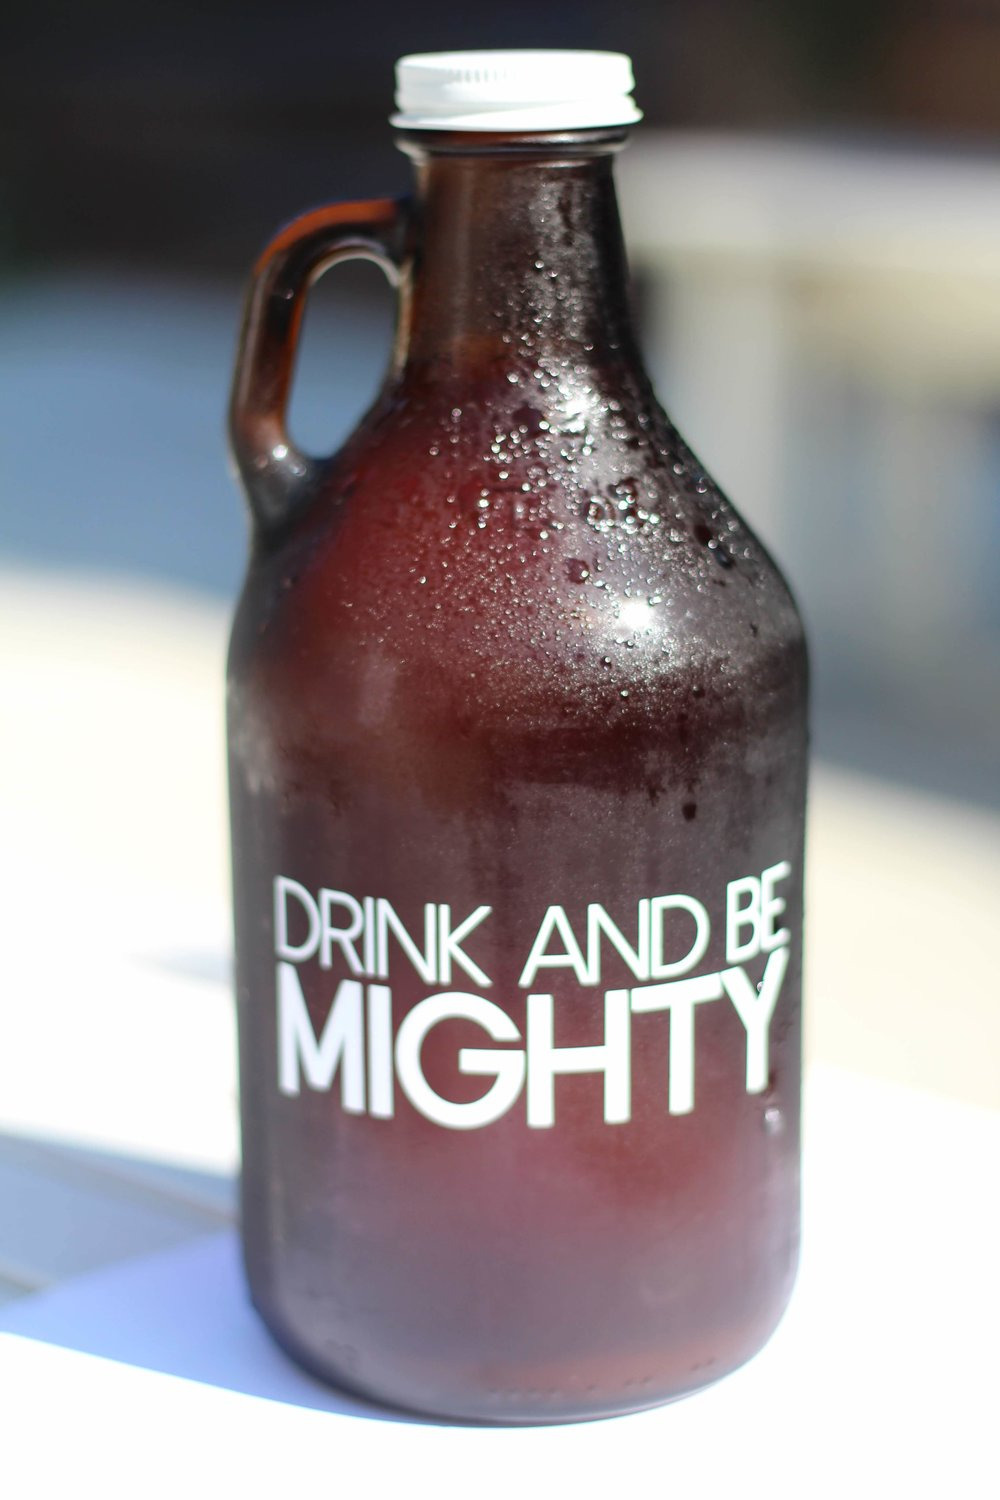 32 oz growlers - Subscribe and save with our weekly delivery service. We will deliver 2-4 growlers to your door each week and pick up your empties.We currently deliver to coastal North County between Del Mar and Cardiff, CA. If you are outside this area please contact us.